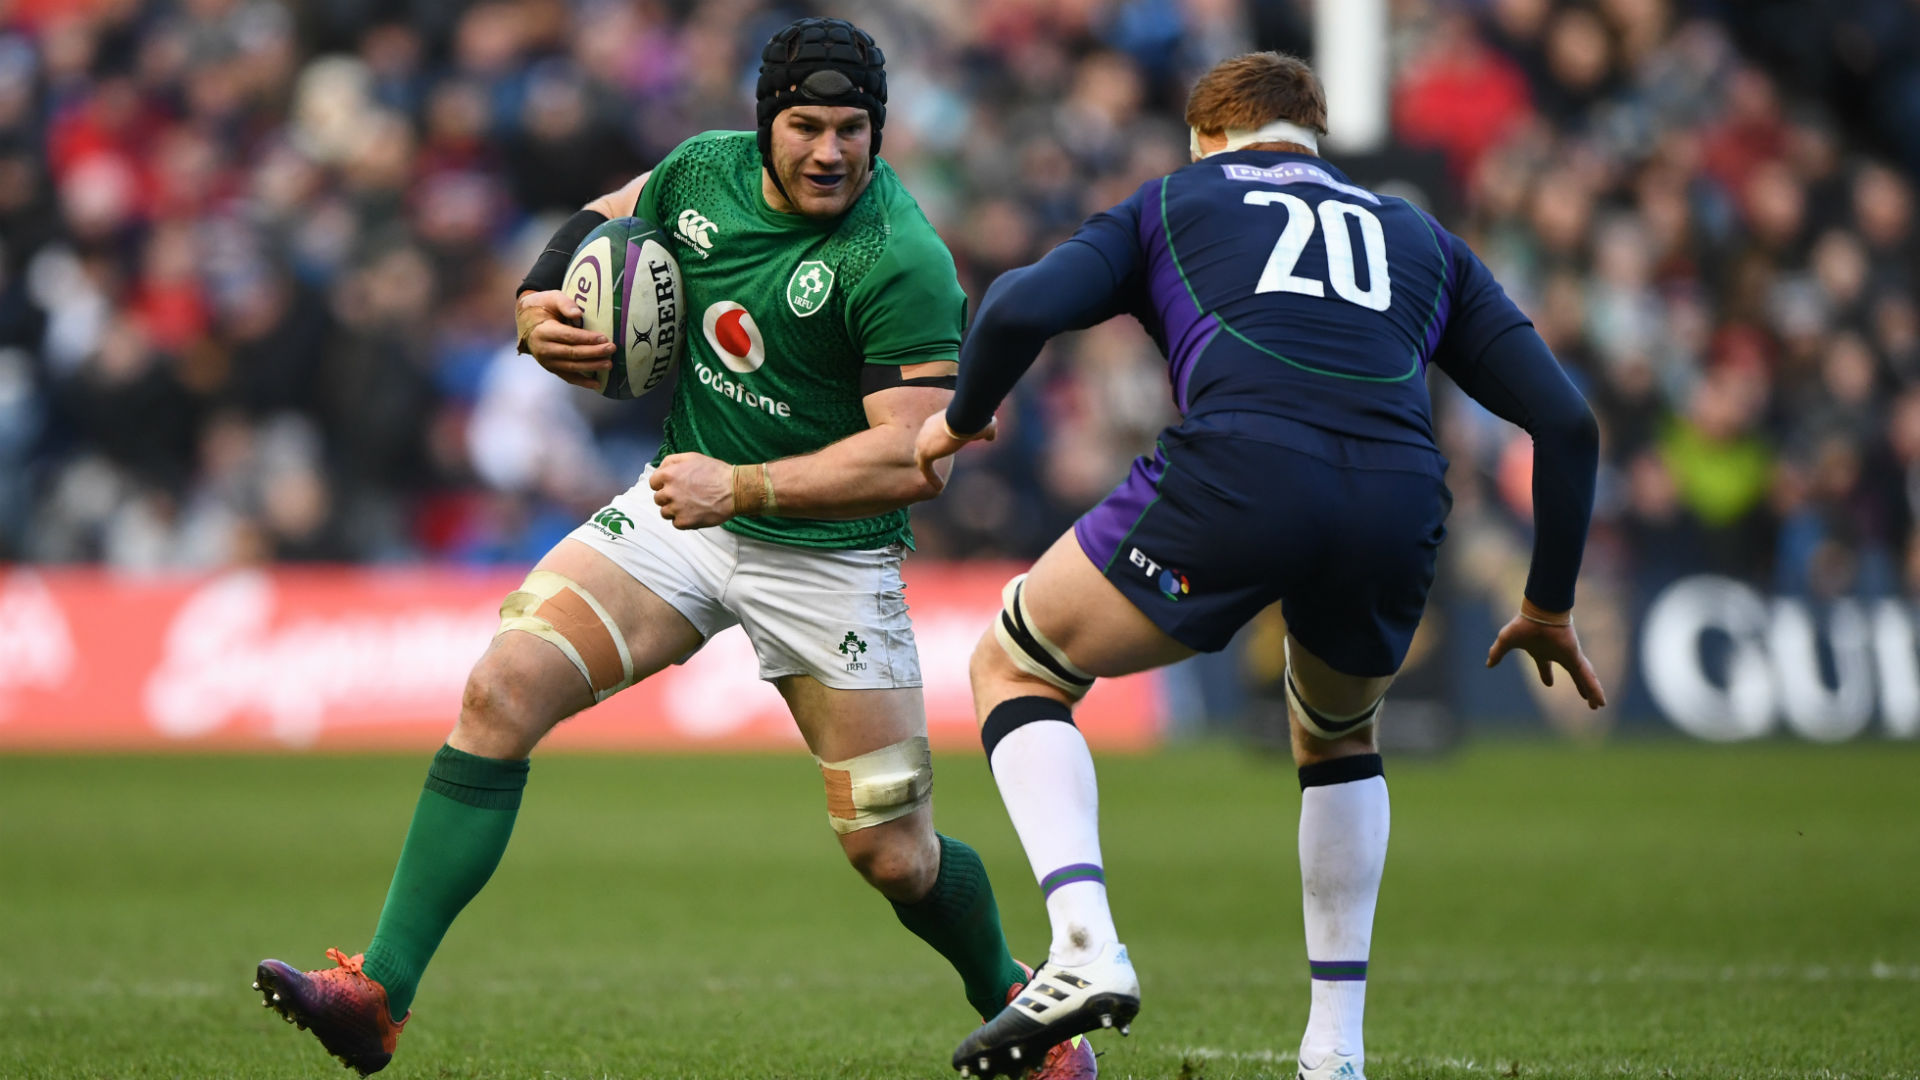 Sean O'Brien's long stay at Leinster will come to an end following the World Cup after he agreed to join ambitious London Irish.